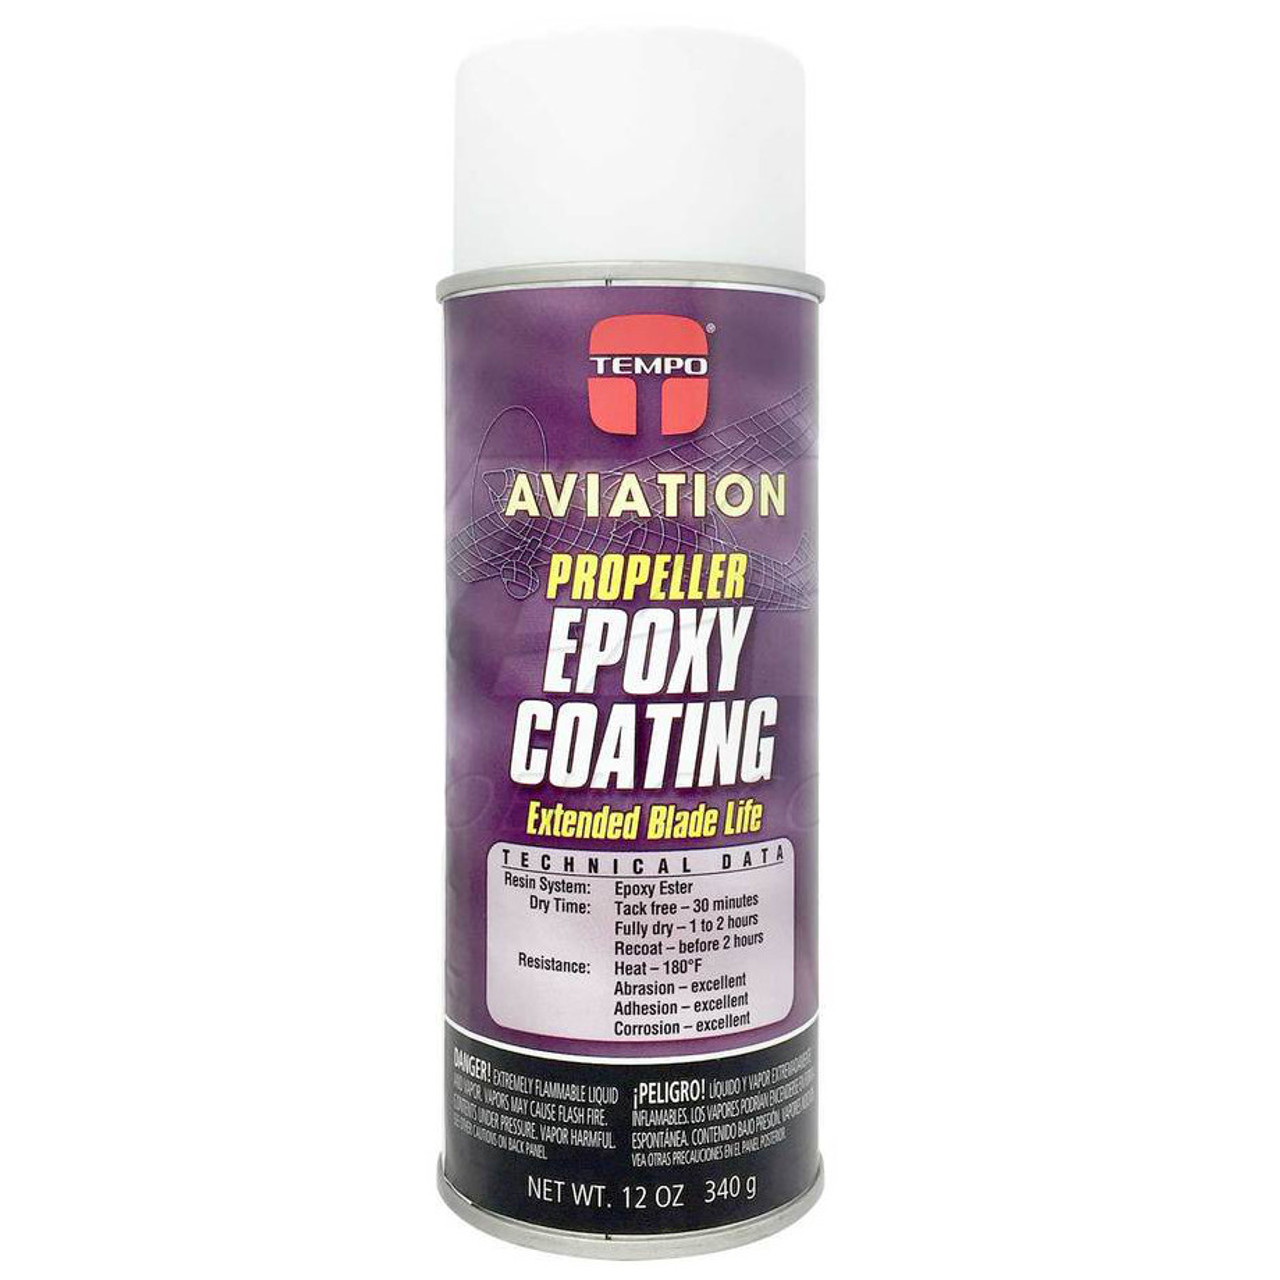 Tempo Aviation Propeller Epoxy Coating A152